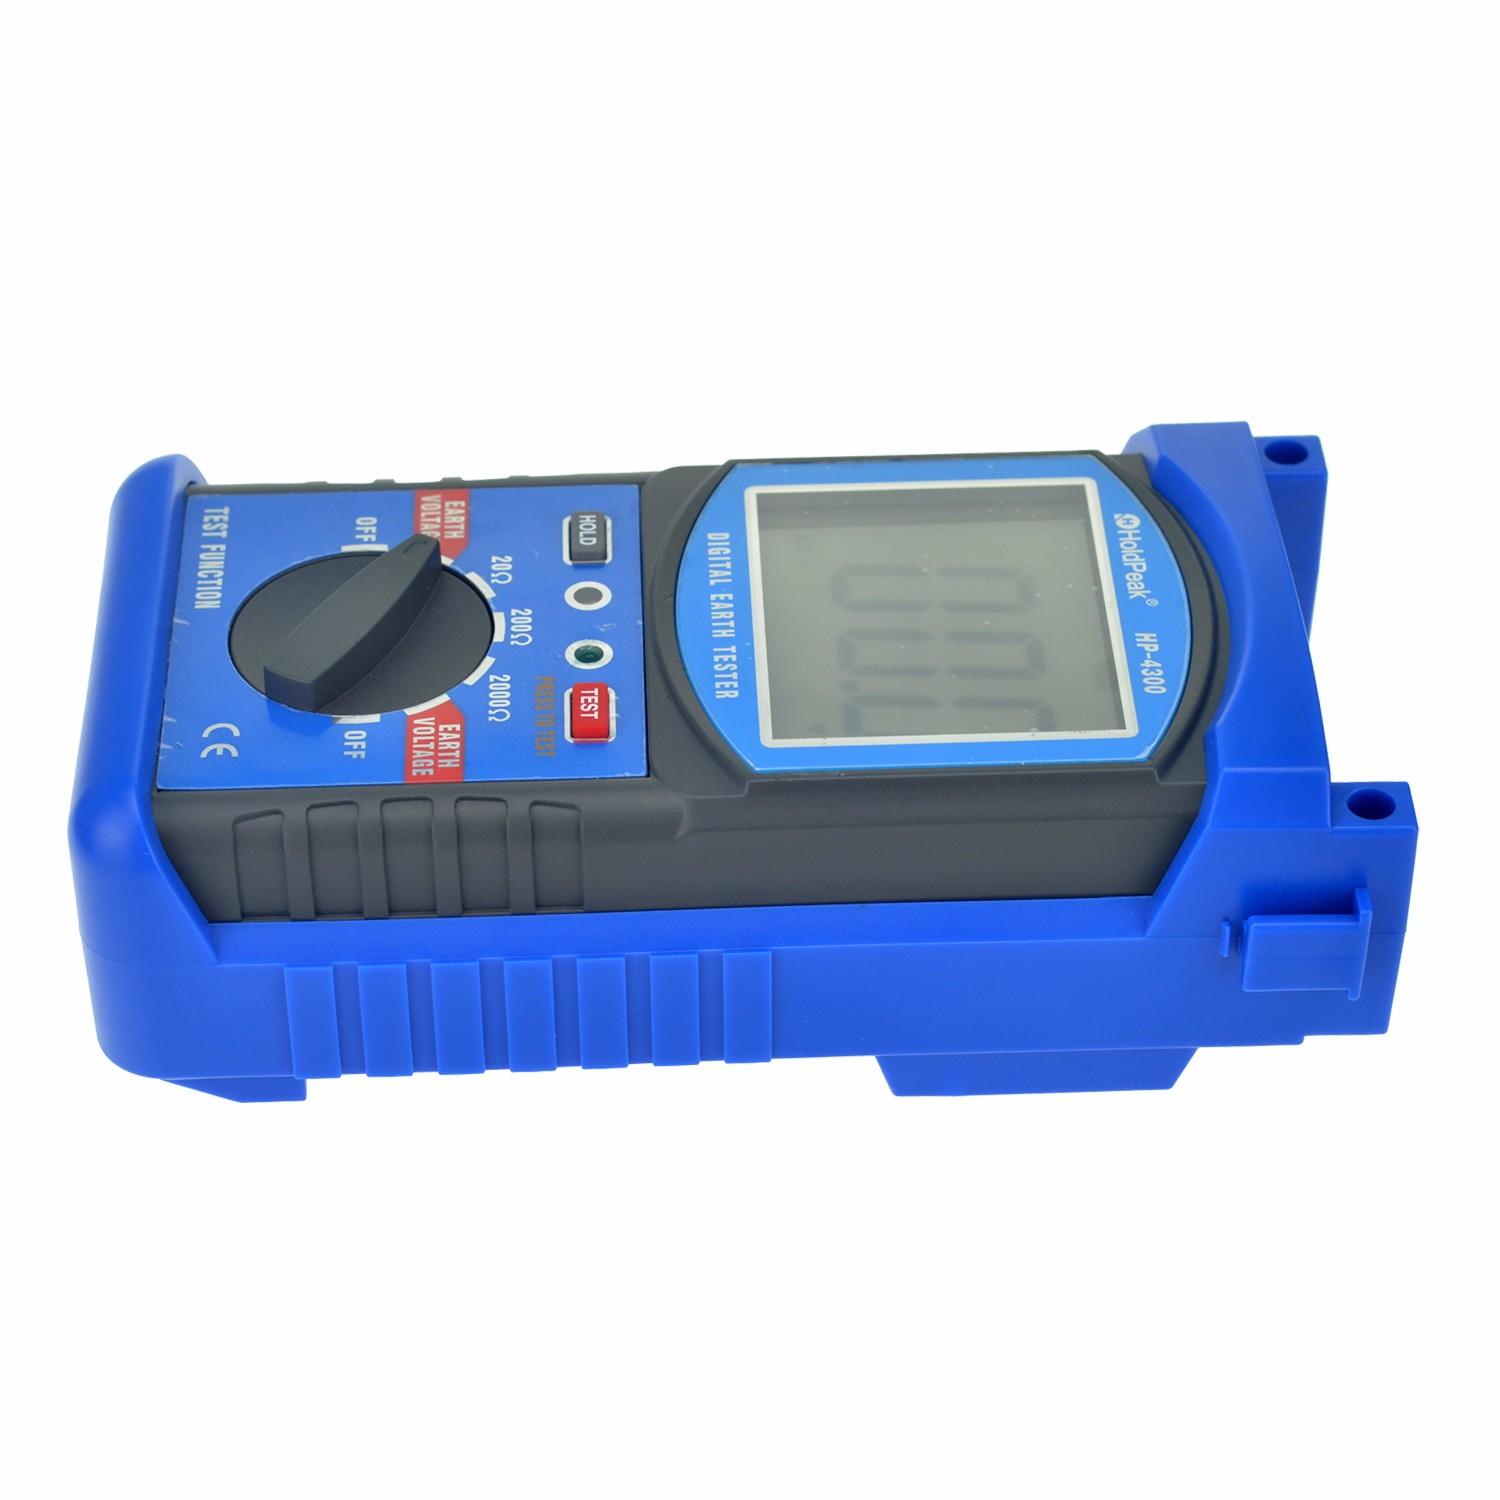 HoldPeak unique ground resistance meters for manufacturering for oilfield-HoldPeak-img-1